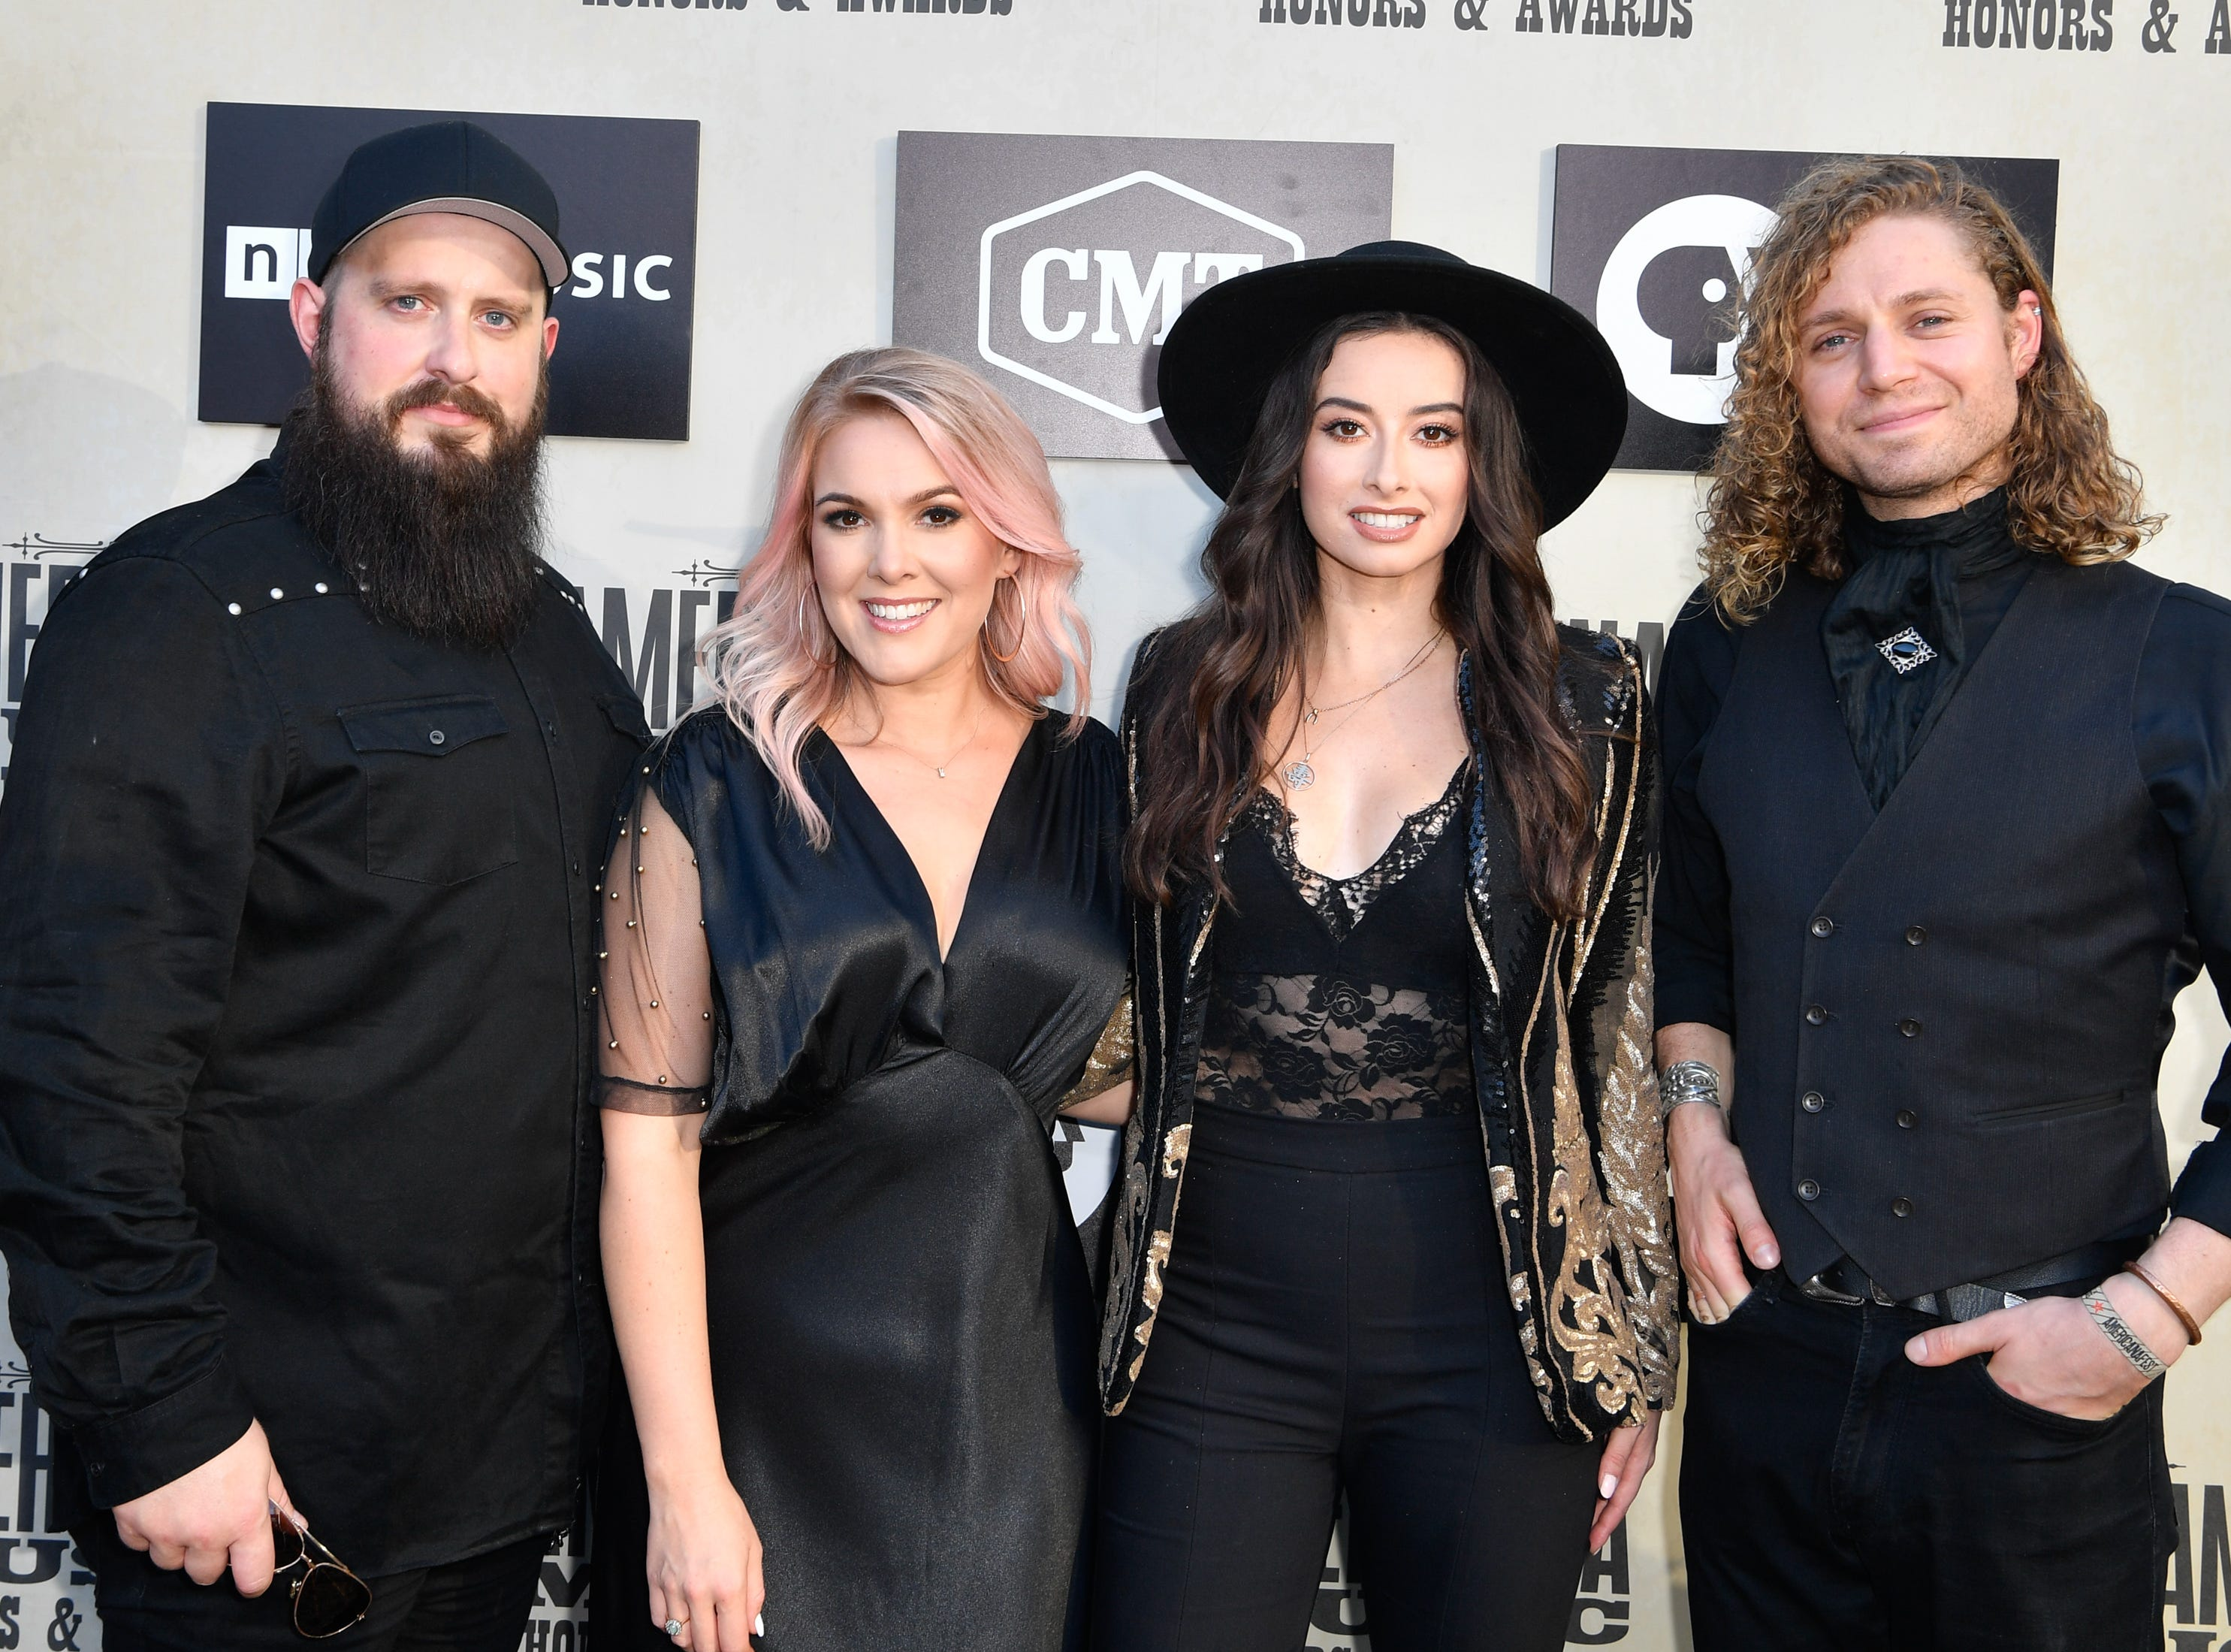 The Wandering Hearts pose on the red carpet before the 2018 Americana Honors and Awards show at the Ryman Auditorium in Nashville, Tenn., Wednesday, Sept. 12, 2018.